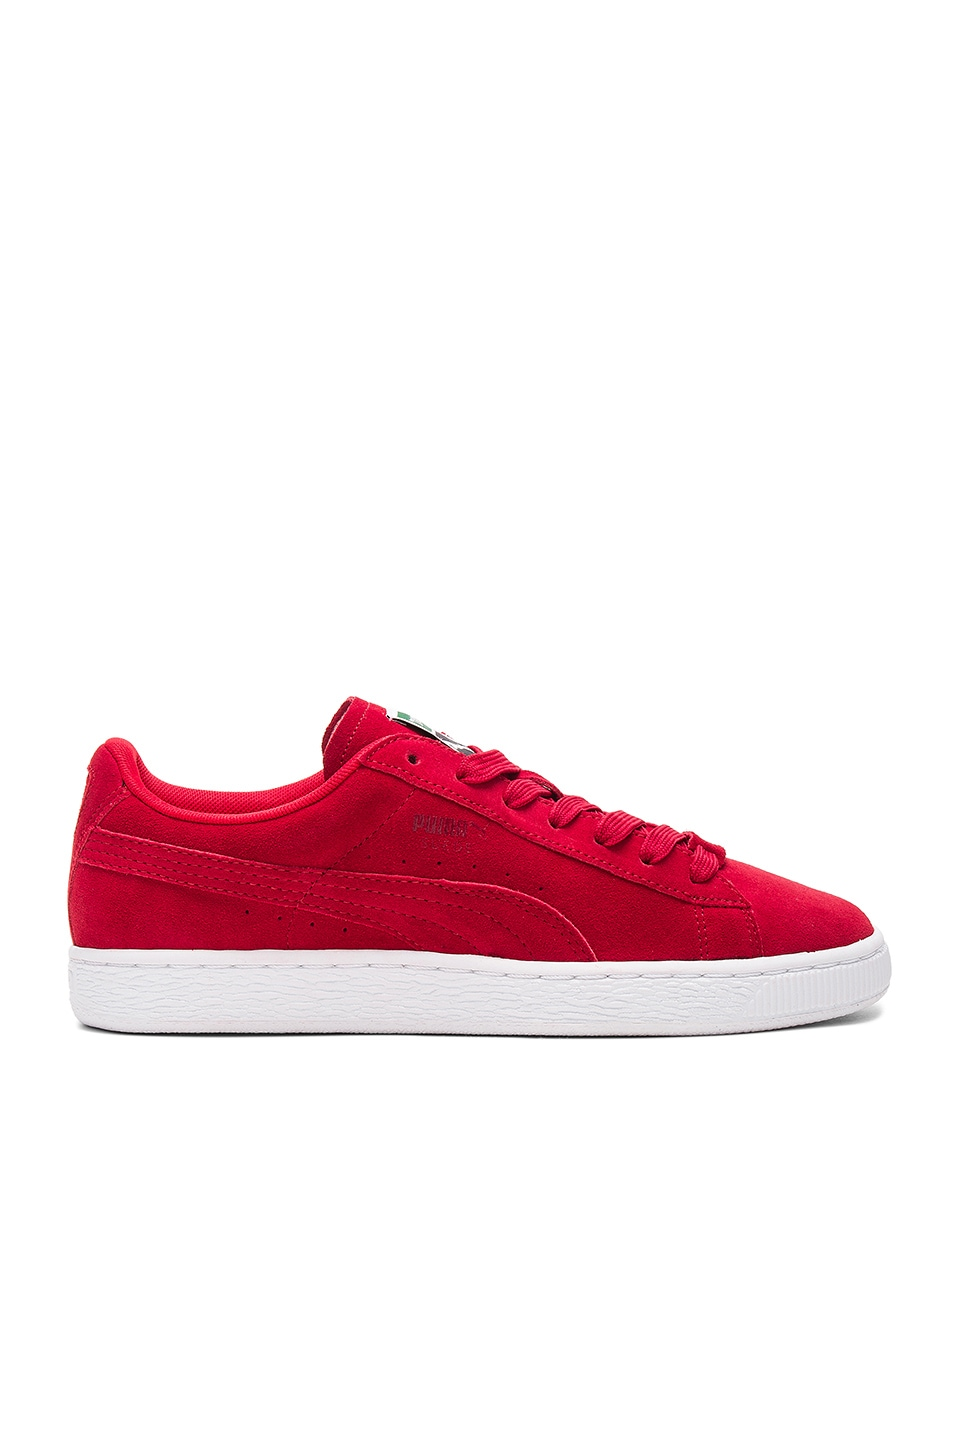 x Trapstar Basket by Puma Select